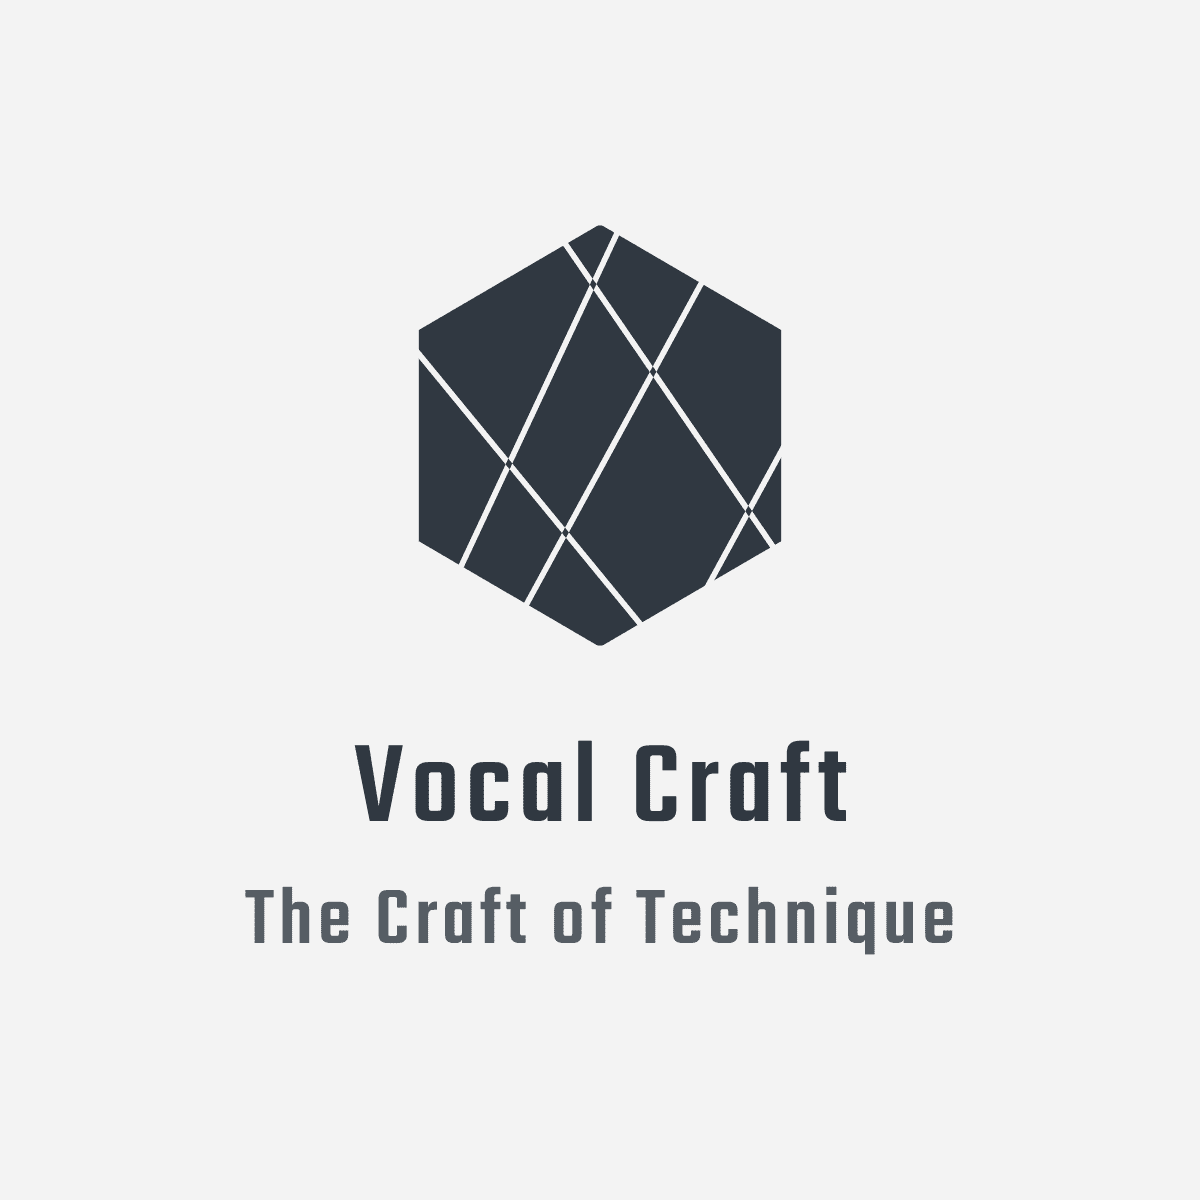 Vocal Craft